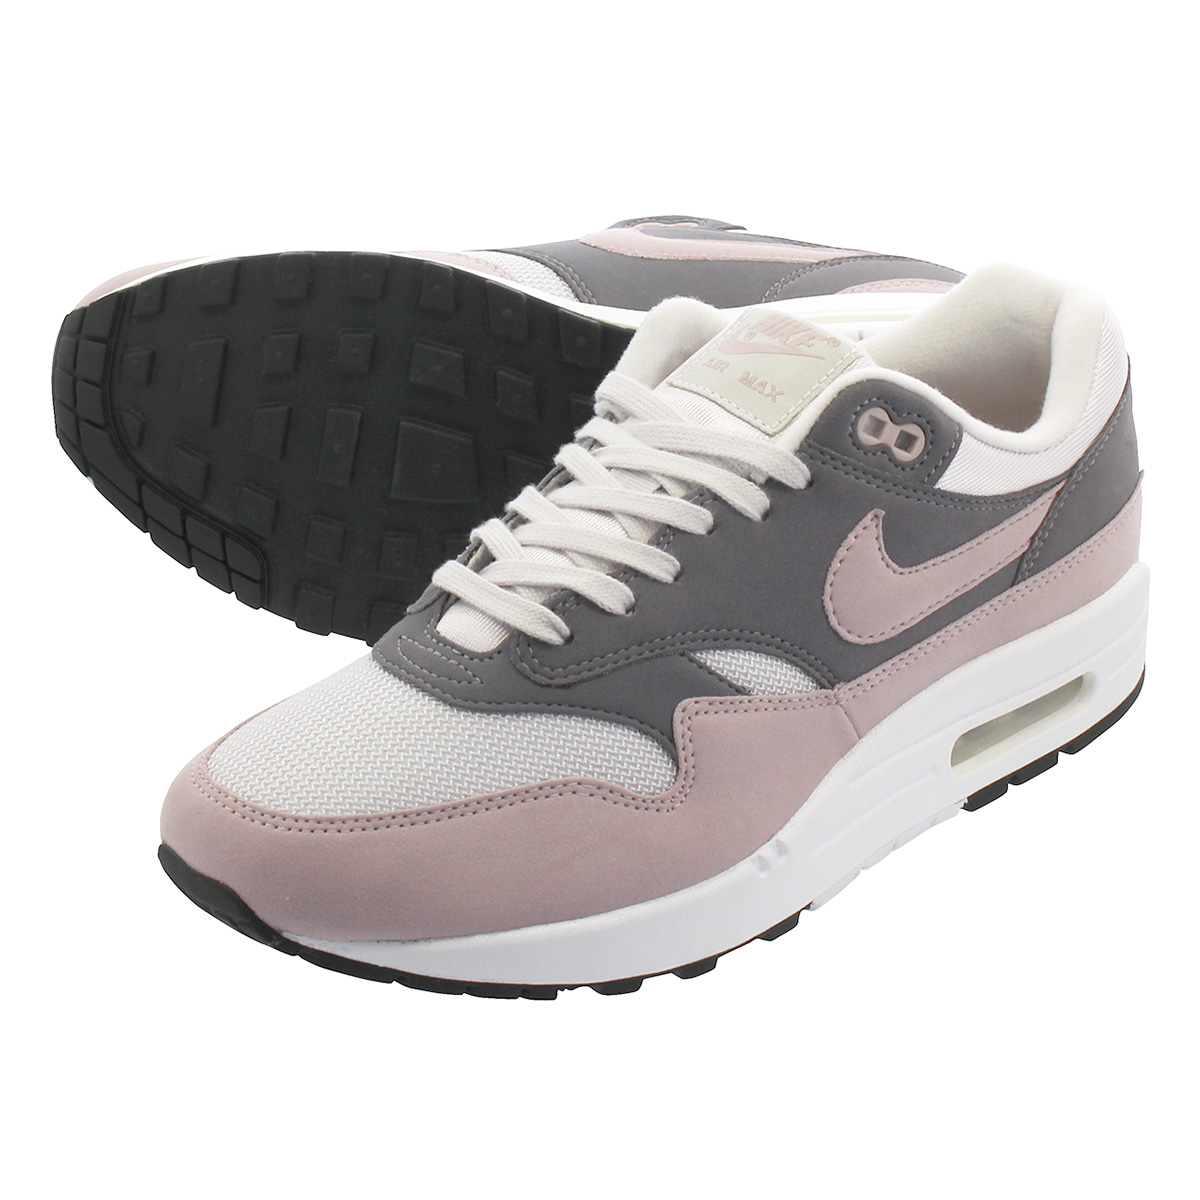 finest selection 60329 54e83 NIKE WMNS AIR MAX 1 Nike women Air Max 1 VAST GREY PARTICLE ROSE GUNSMOKE BLACK  319,986-032